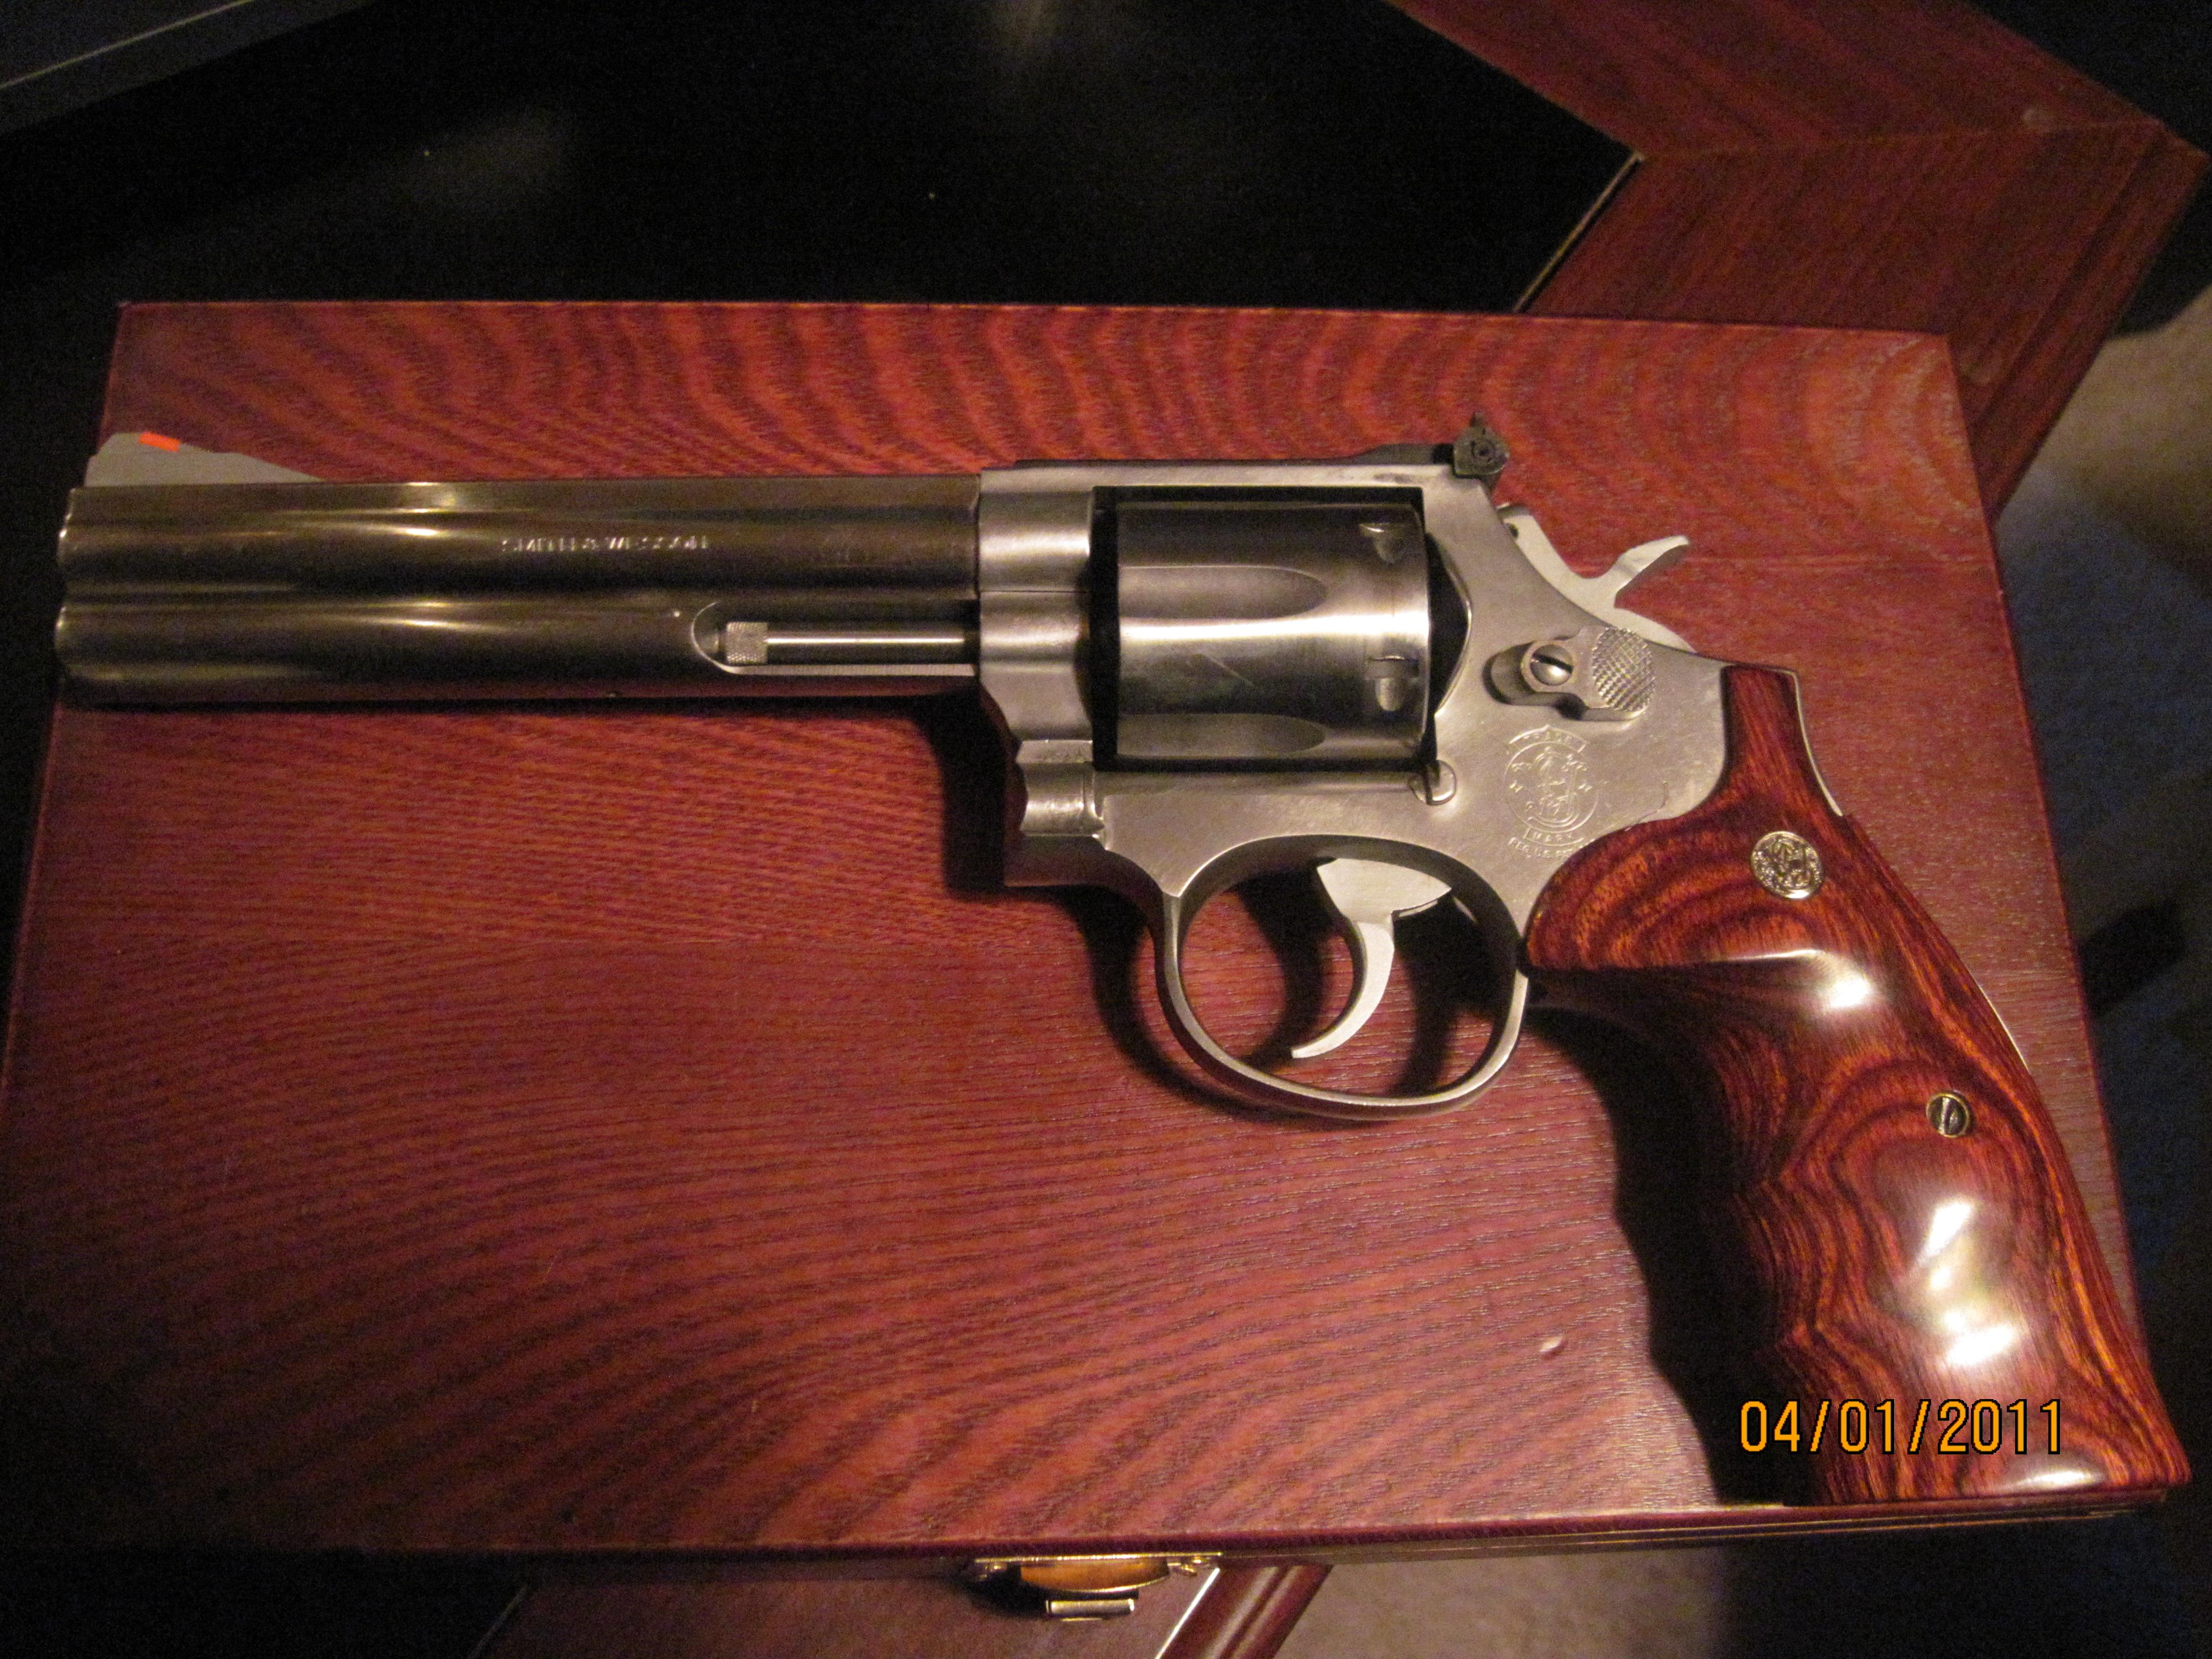 Smith & Wesson model 686-1  Guns > Pistols > Smith & Wesson Revolvers > Full Frame Revolver